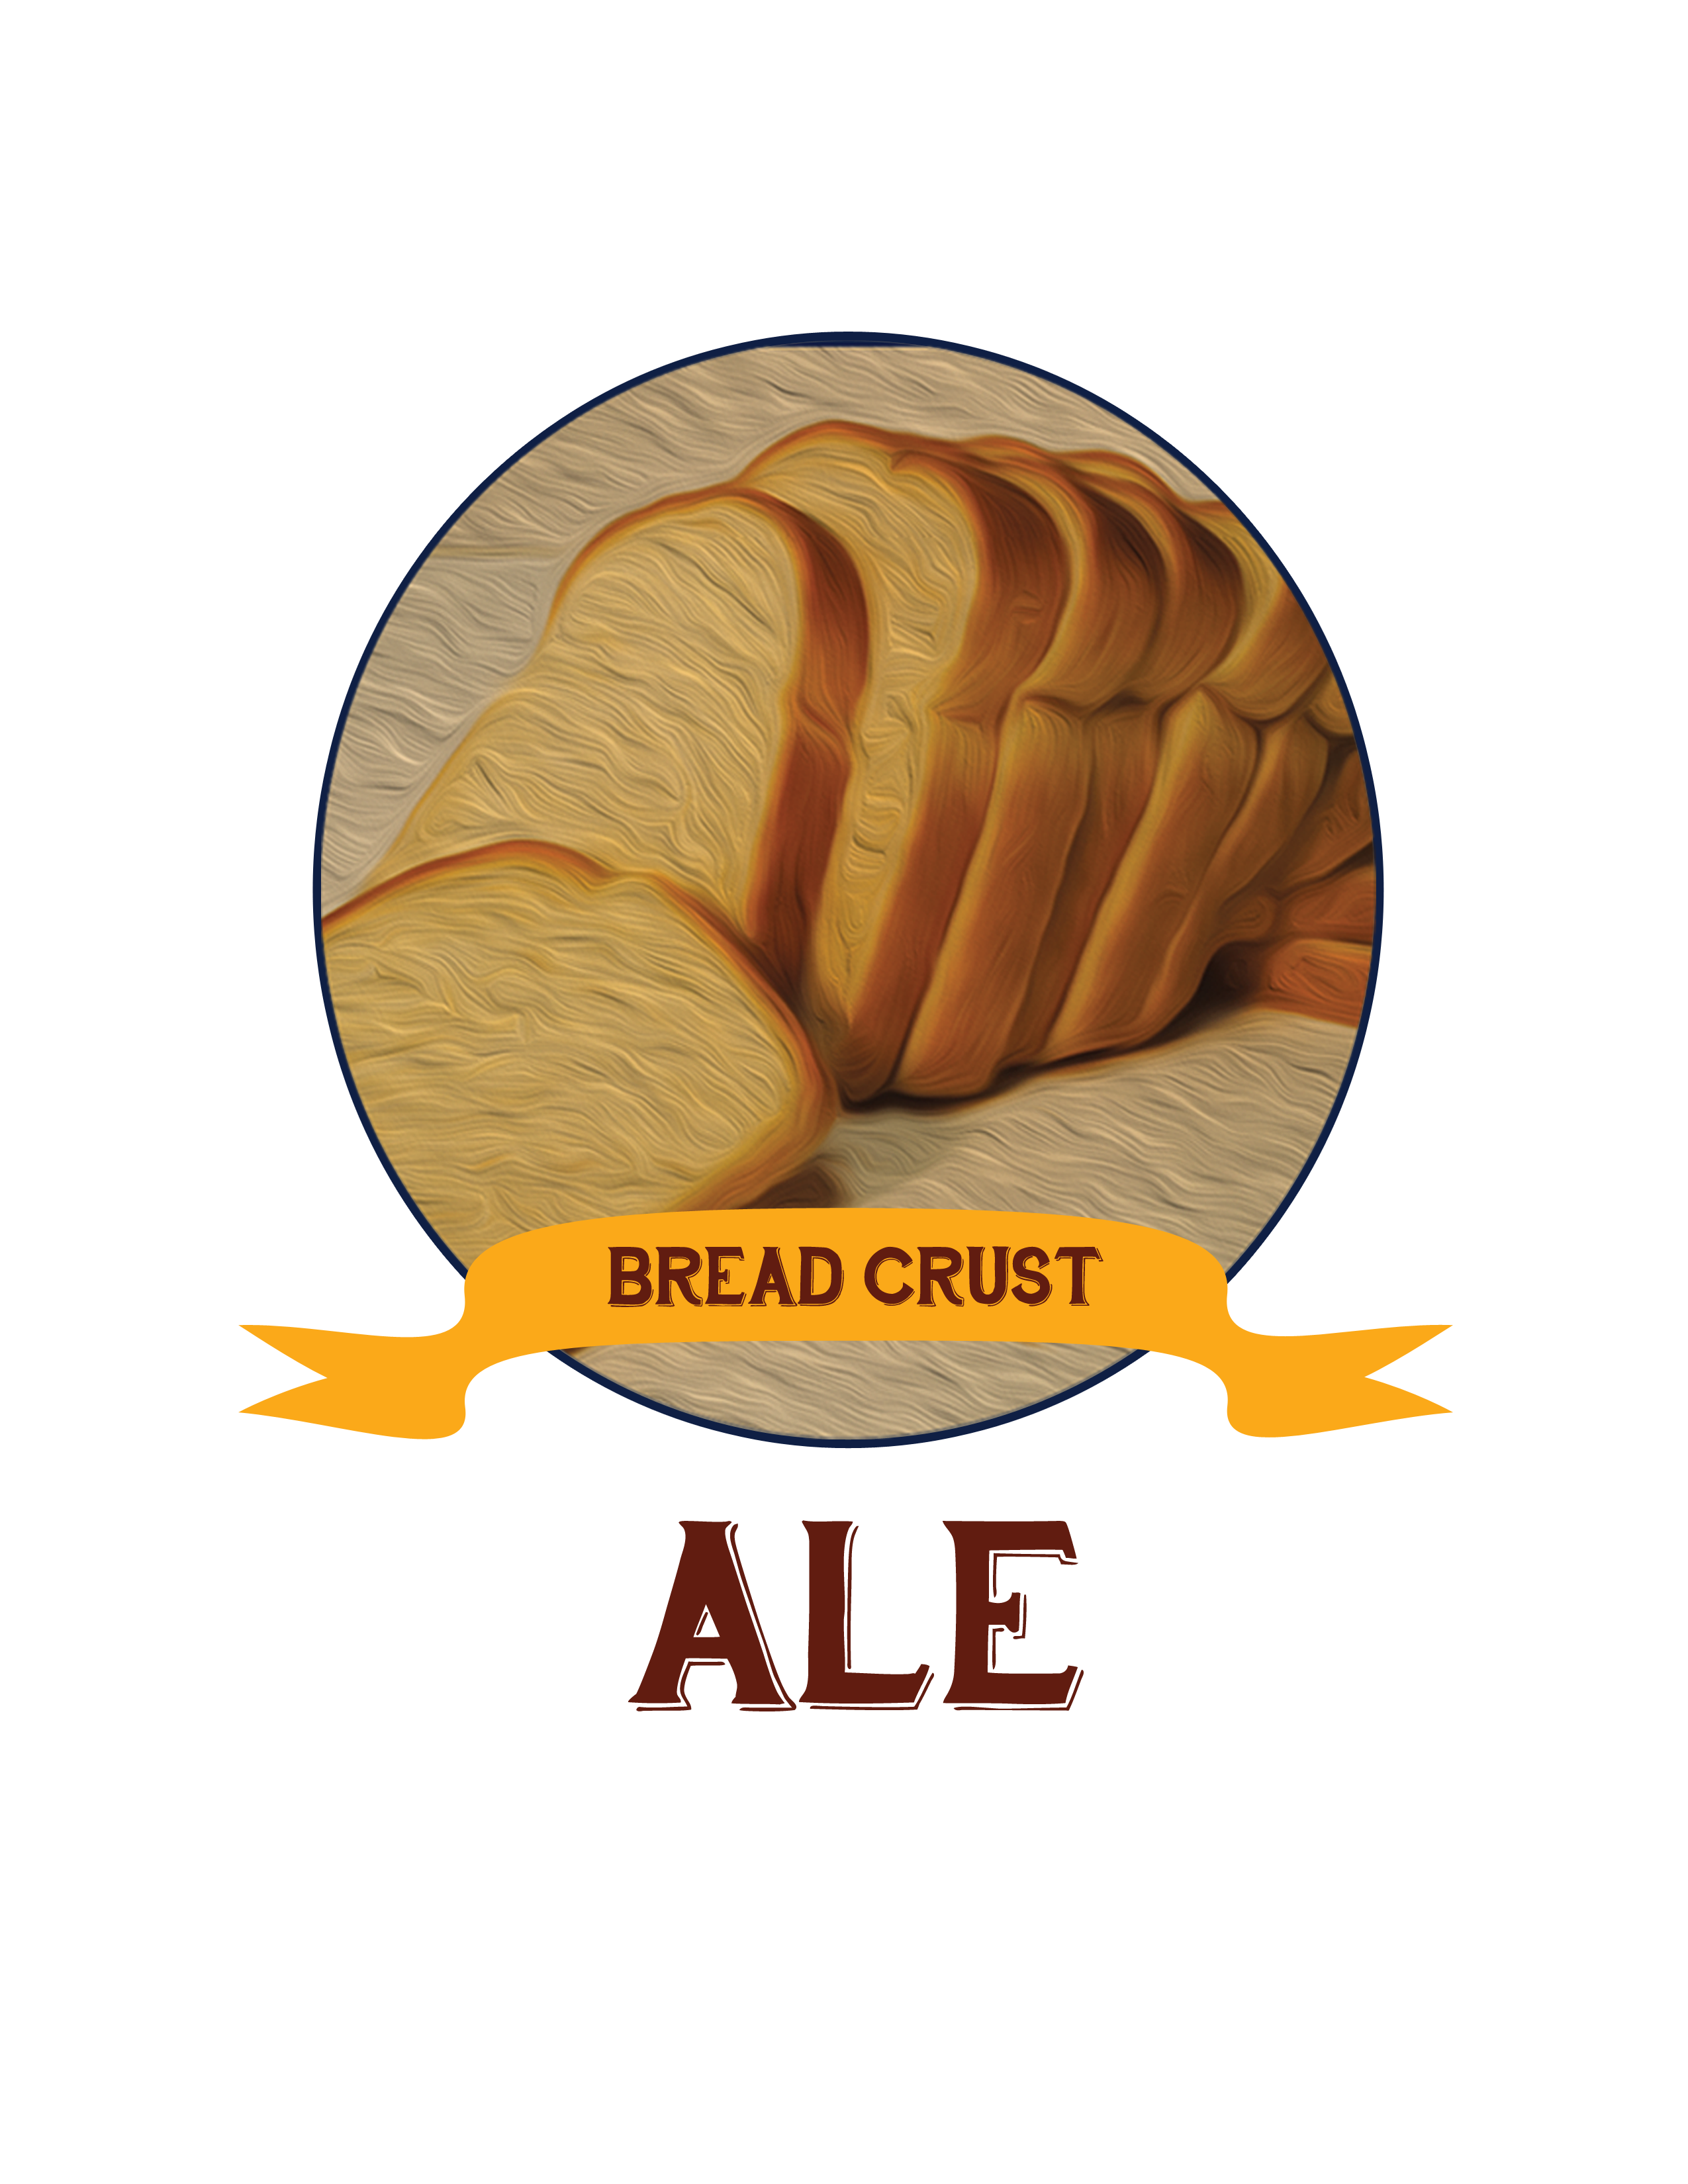 Bread Crust AleGrainHouse Brewing Co. Brewing co, Ale